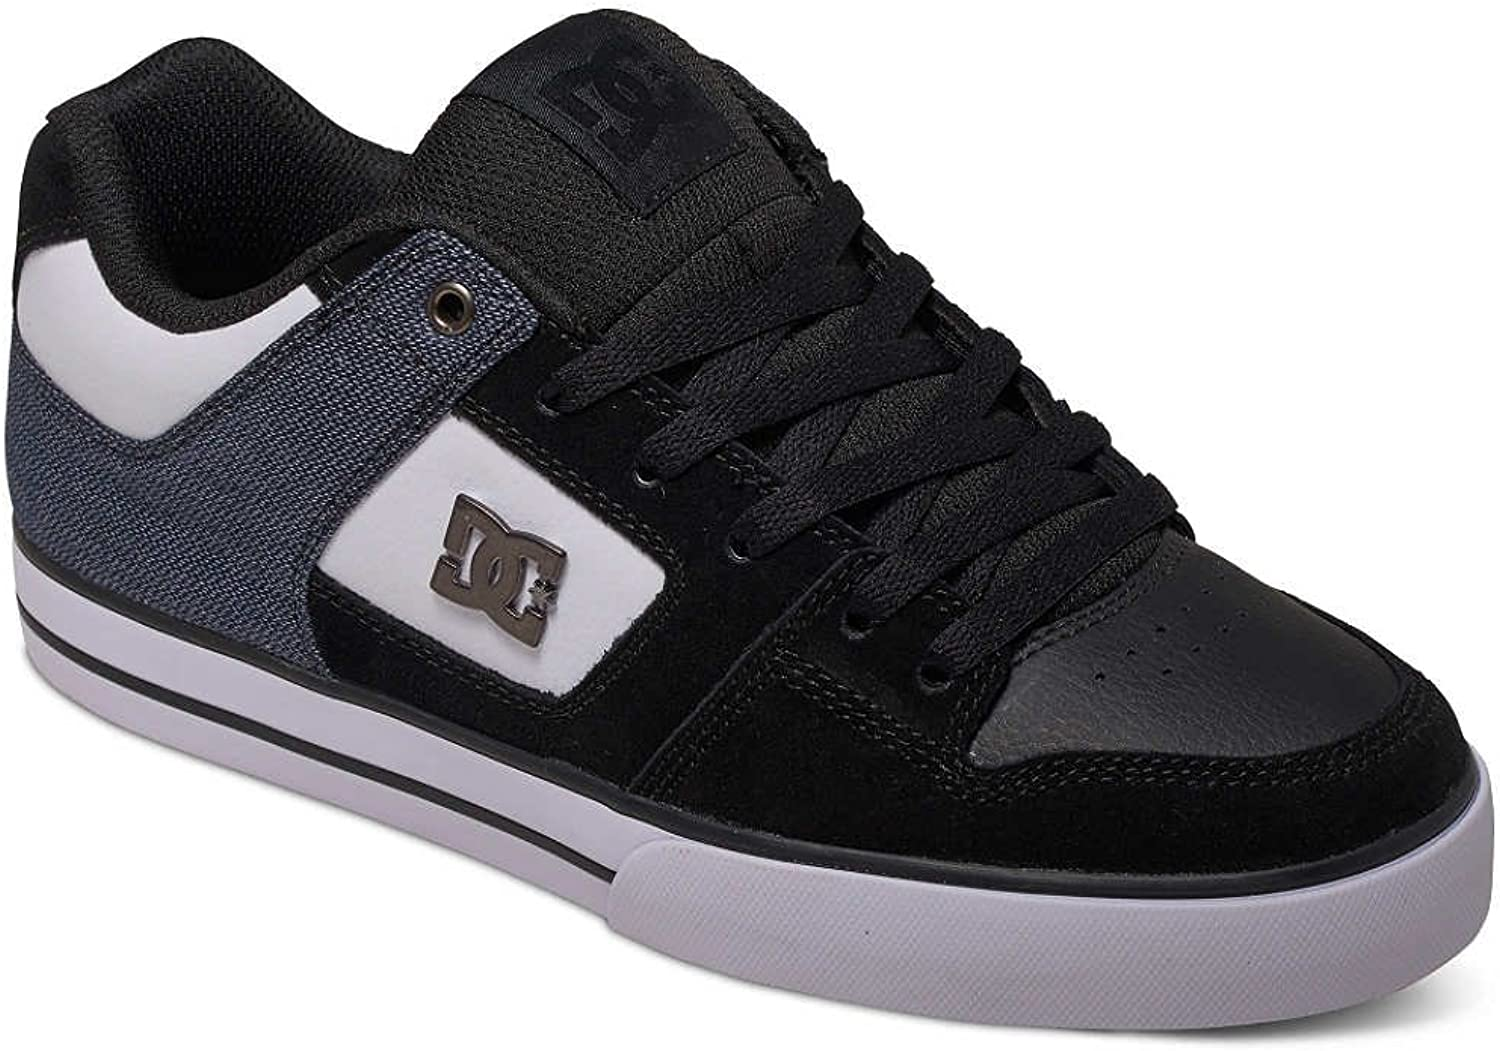 DC shoes Pure Trainers in Black and Grey